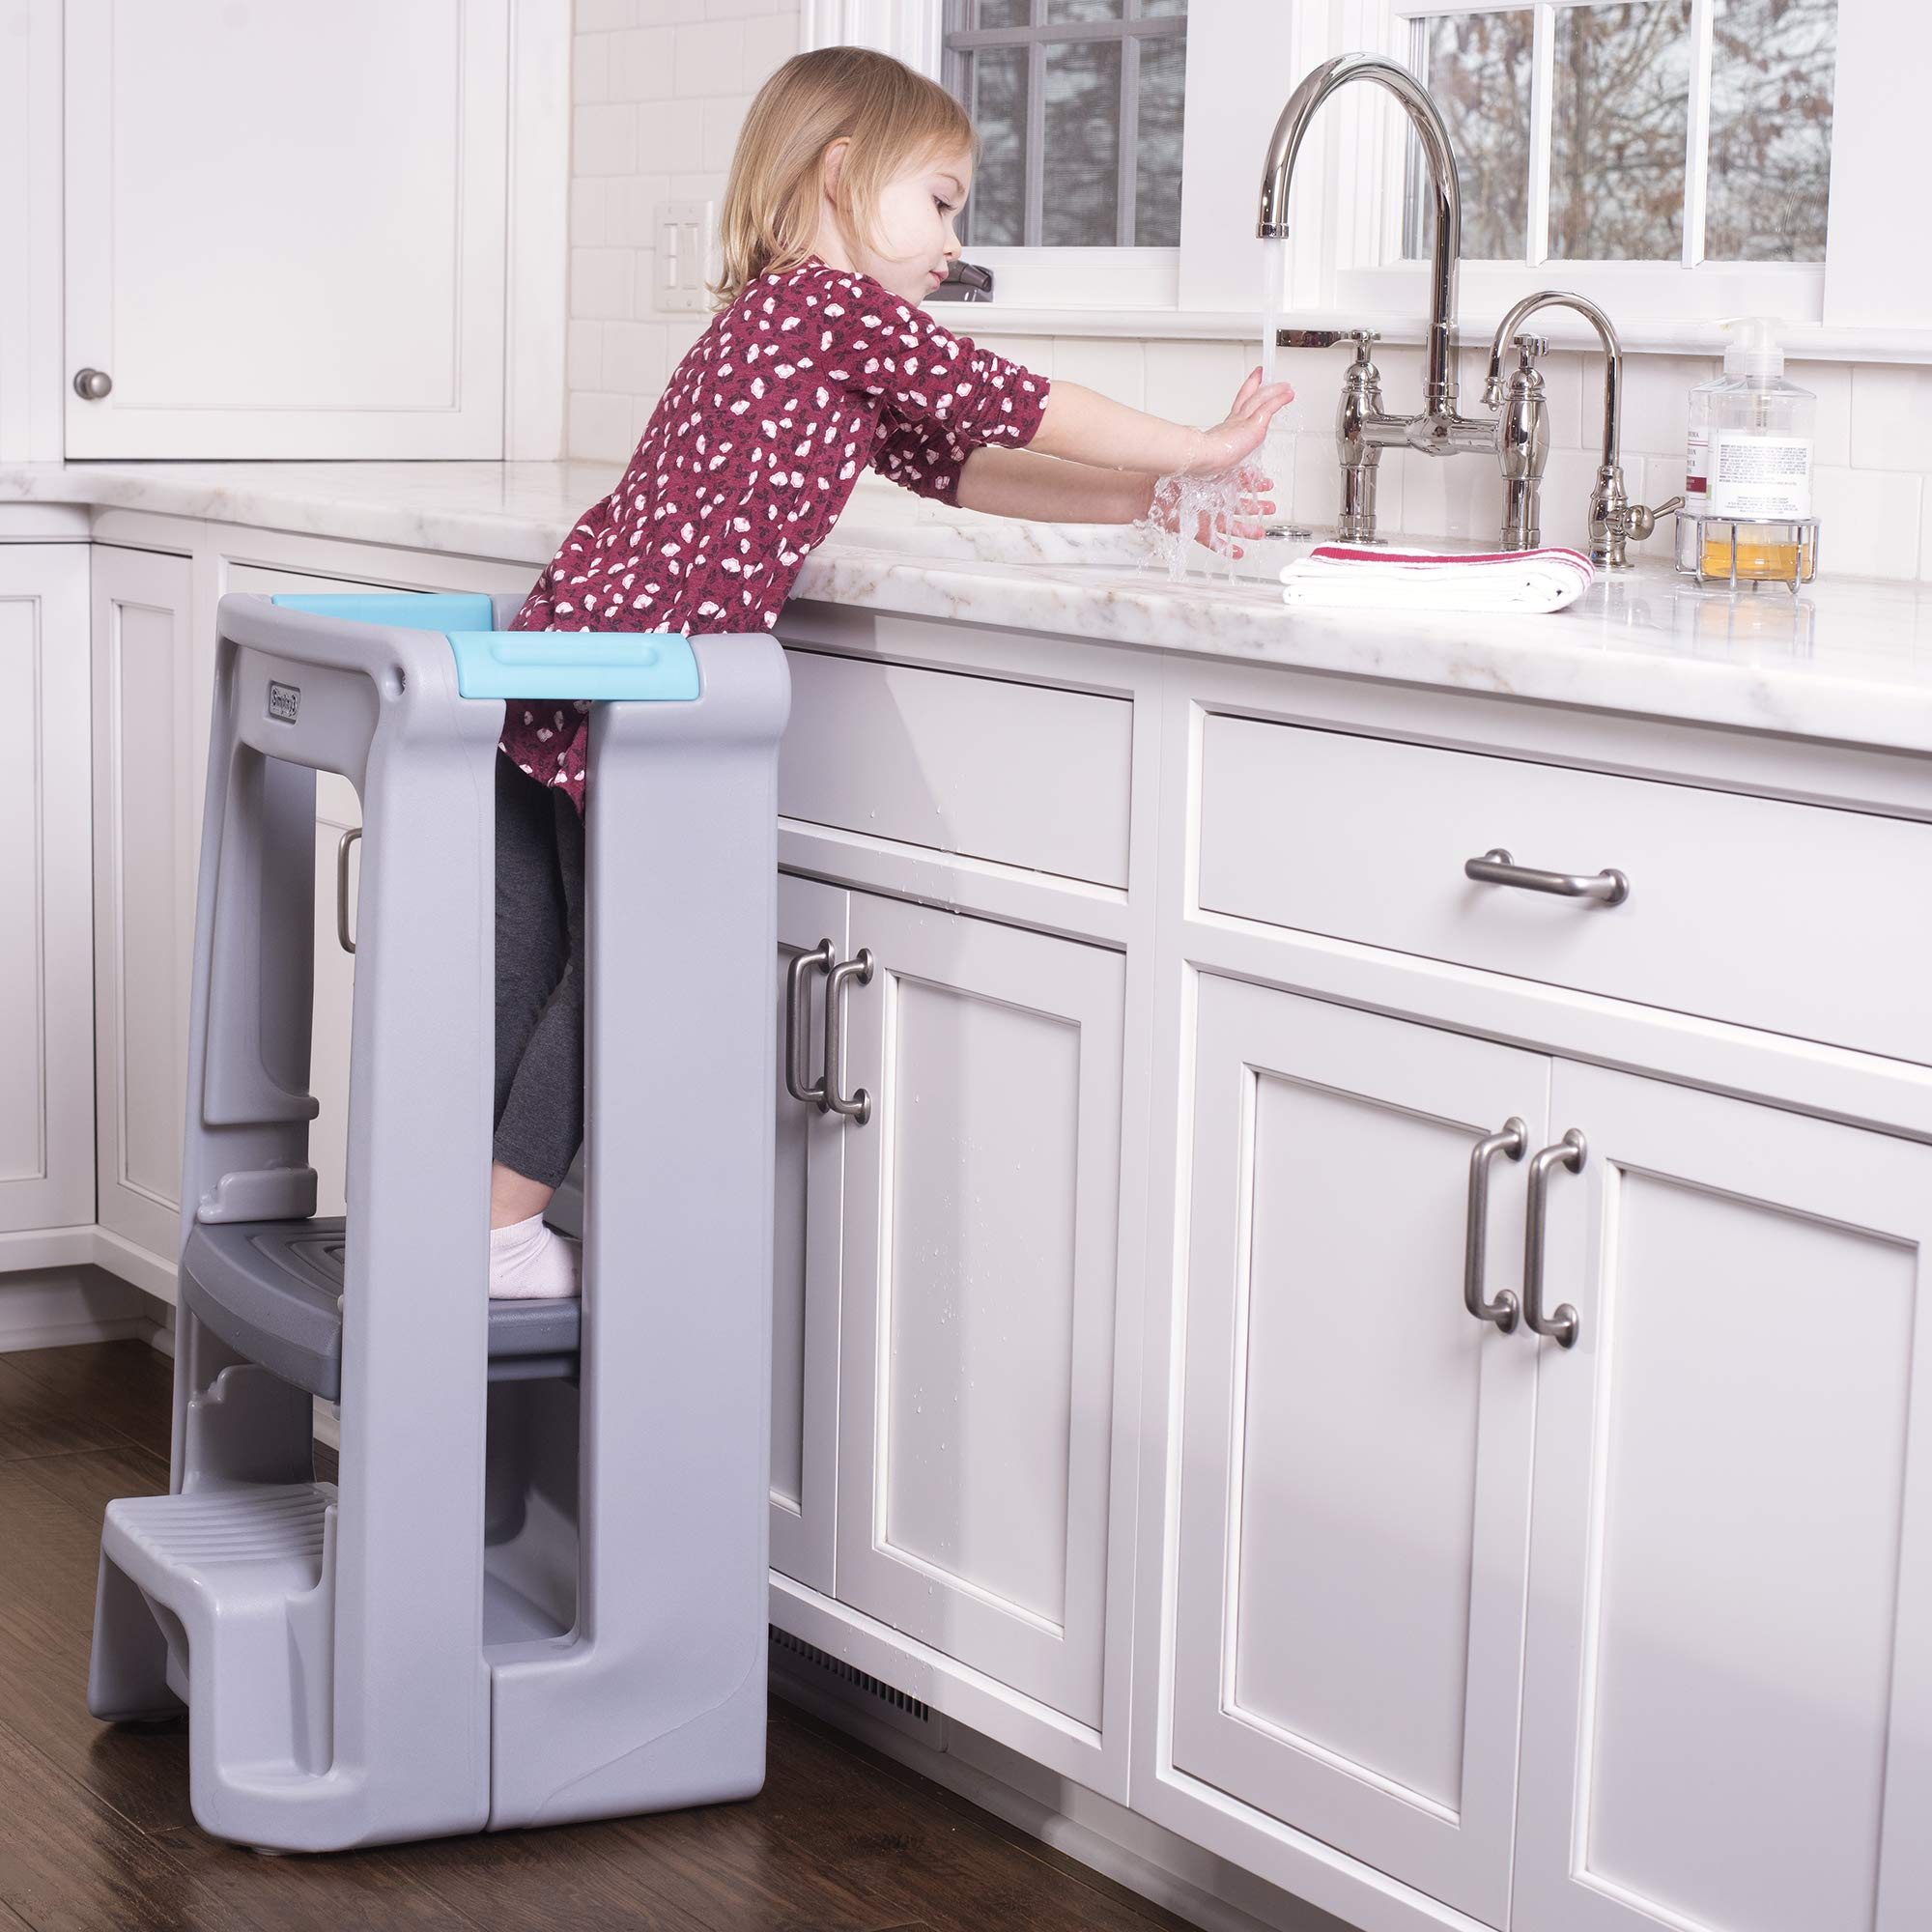 Simplay3 Toddler Tower Childrens Step Stool with Three Adjustable Heights, Gray by Simplay3 (Image #7)